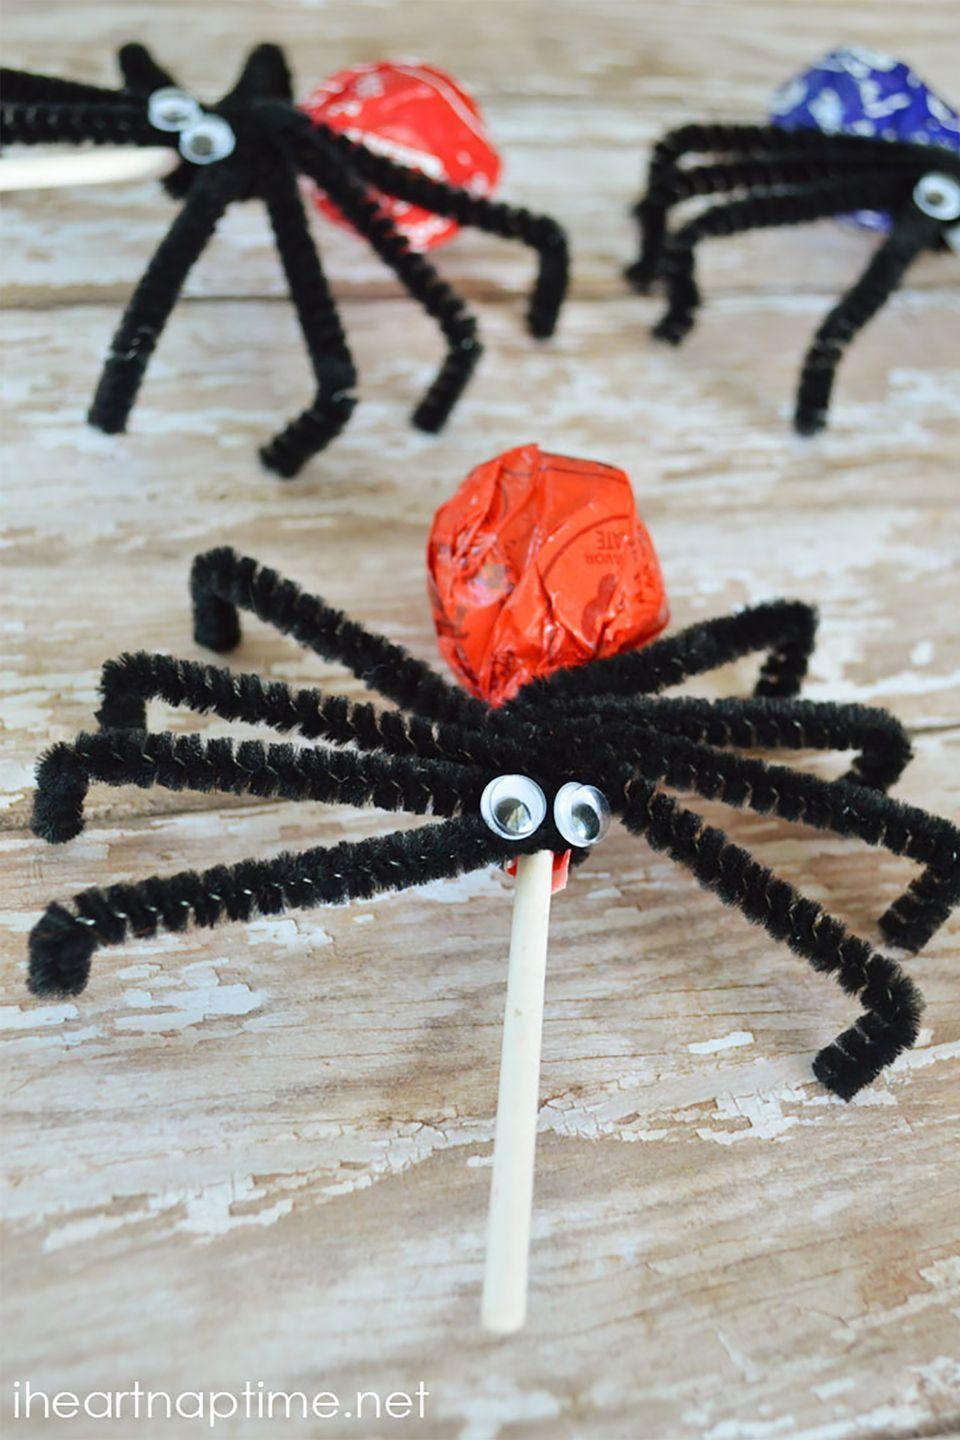 "<p>Lollipops get a scary twist dressed as creepy crawlers.</p><p><strong>Get the tutorial at <a href=""https://www.iheartnaptime.net/spider-suckers/"" rel=""nofollow noopener"" target=""_blank"" data-ylk=""slk:I Heart Nap Time"" class=""link rapid-noclick-resp"">I Heart Nap Time</a>. </strong><br></p><p><a class=""link rapid-noclick-resp"" href=""https://www.amazon.com/Tootsie-059584-Pops-10-13-oz/dp/B000WGD21Q/?tag=syn-yahoo-20&ascsubtag=%5Bartid%7C10050.g.4950%5Bsrc%7Cyahoo-us"" rel=""nofollow noopener"" target=""_blank"" data-ylk=""slk:SHOP LOLLIPOPS"">SHOP LOLLIPOPS</a><br></p>"